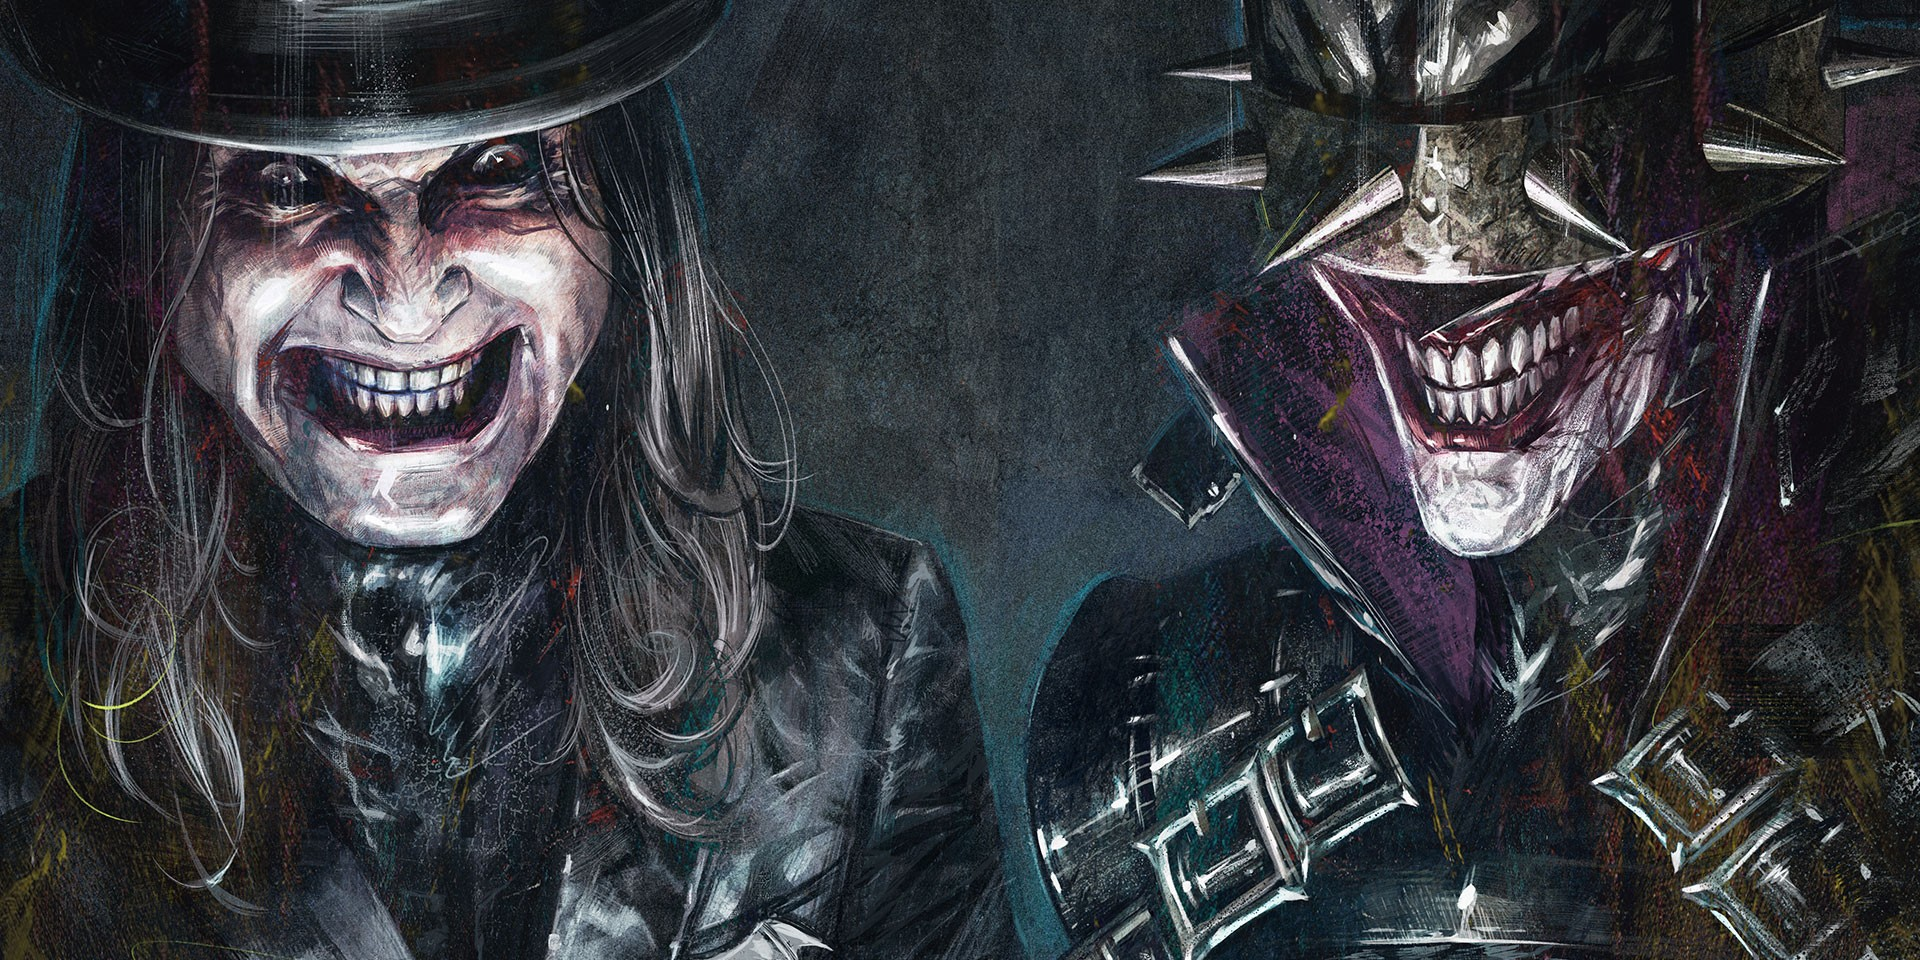 DC ties up with Ozzy Osbourne, Megadeth, Dream Theater, and more for Dark Nights: Death Metal – Band Edition comic book series